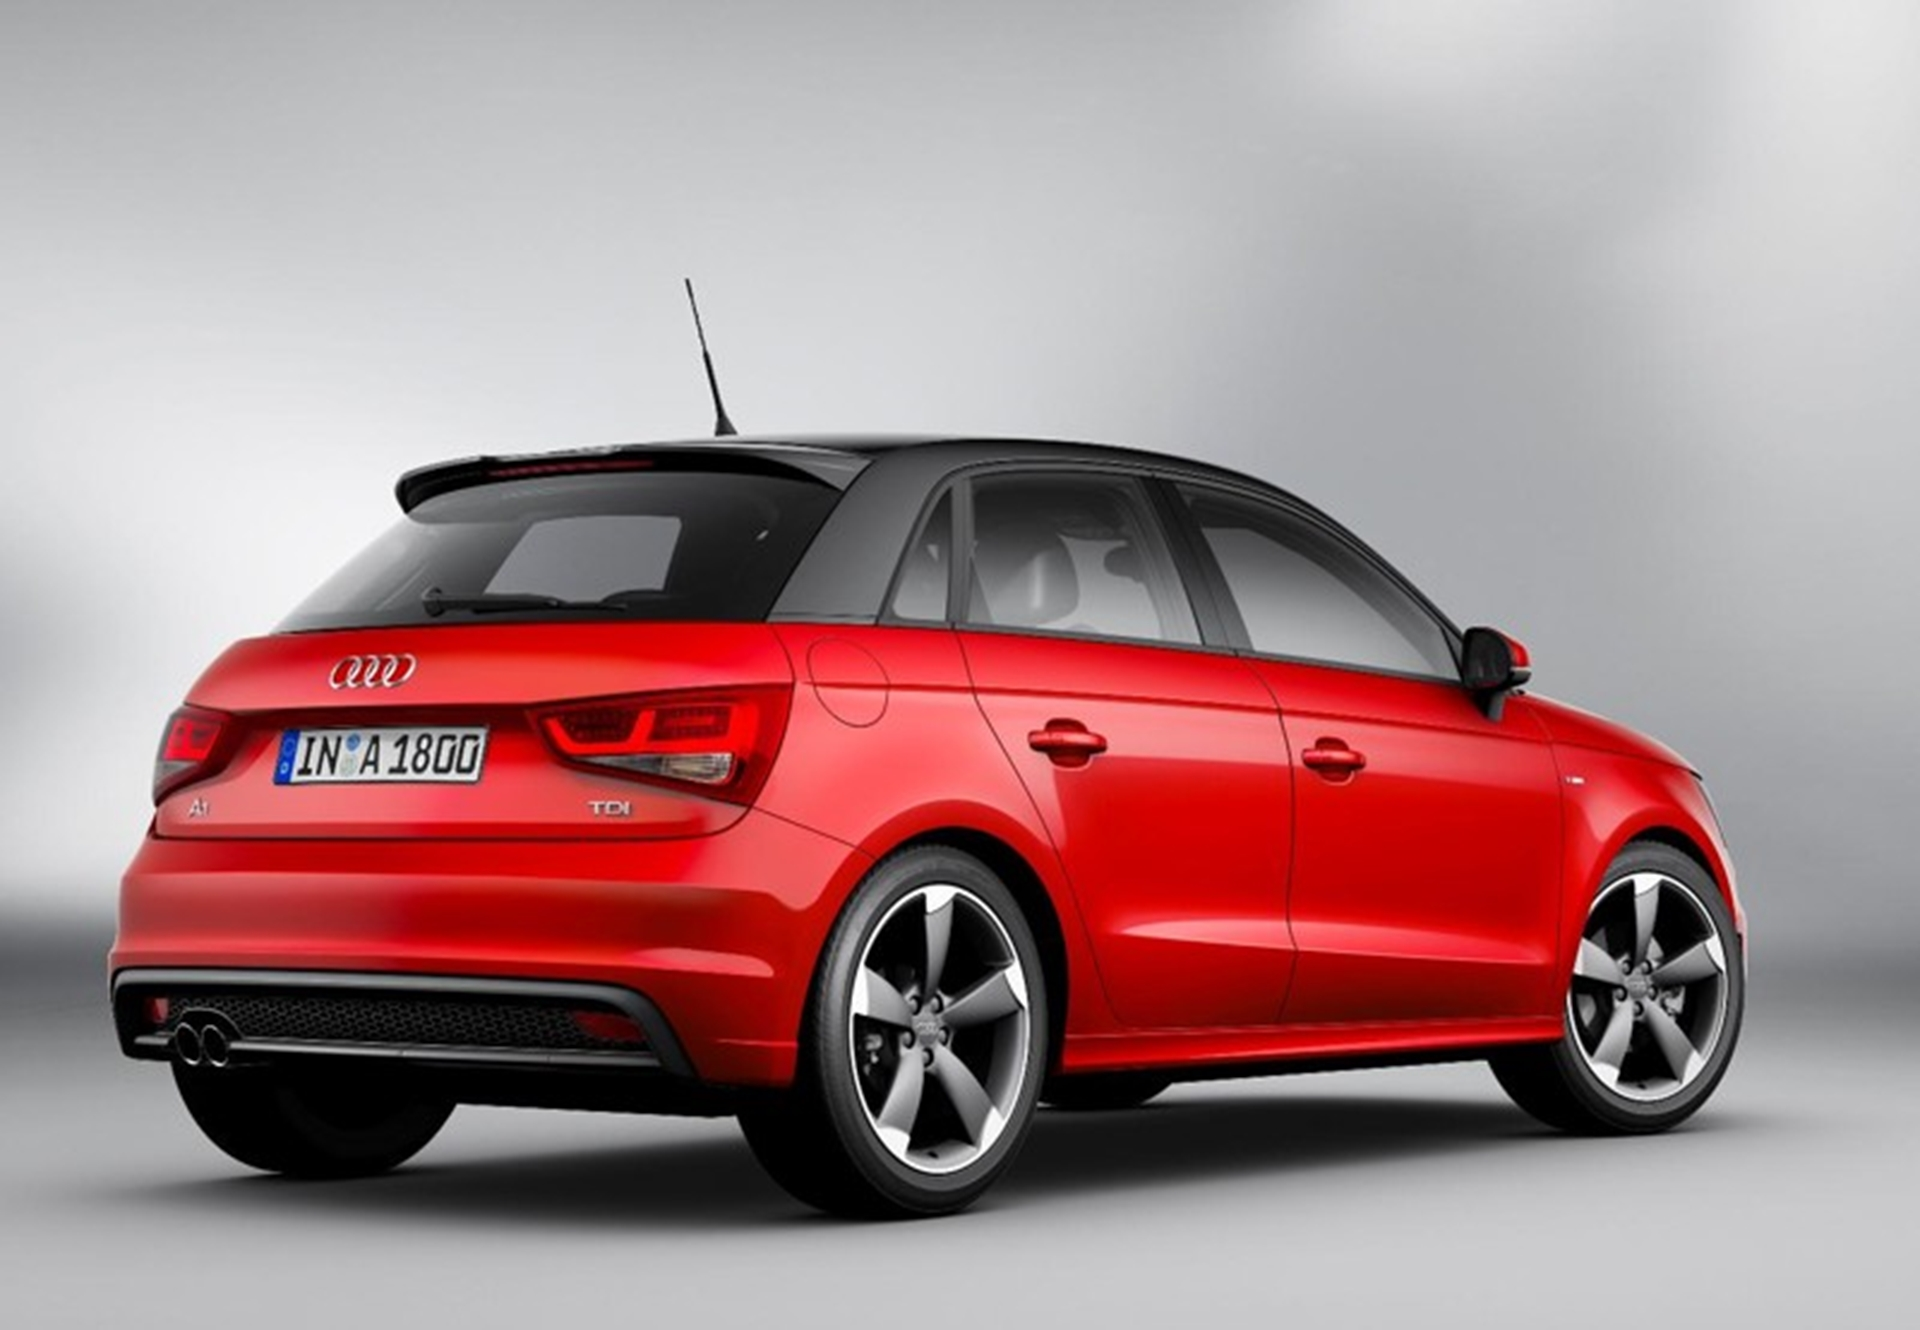 New Audi A1 SportBack 2012 Rear View